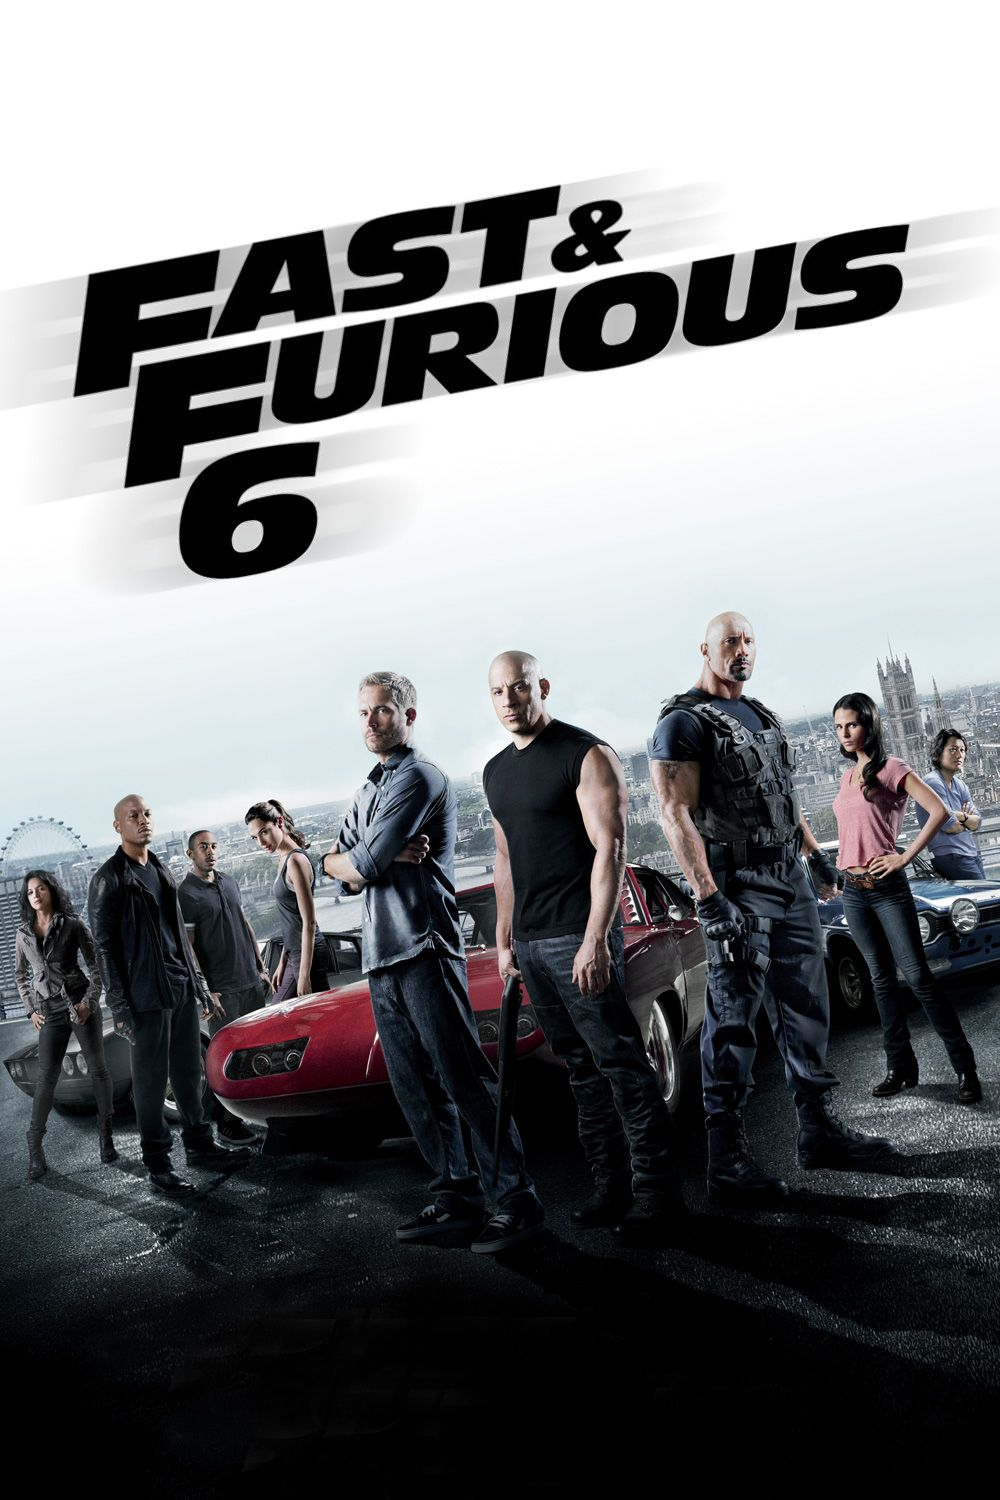 Fast and Furious - Movie Cover Artwork - Cover Whiz | Fast ...